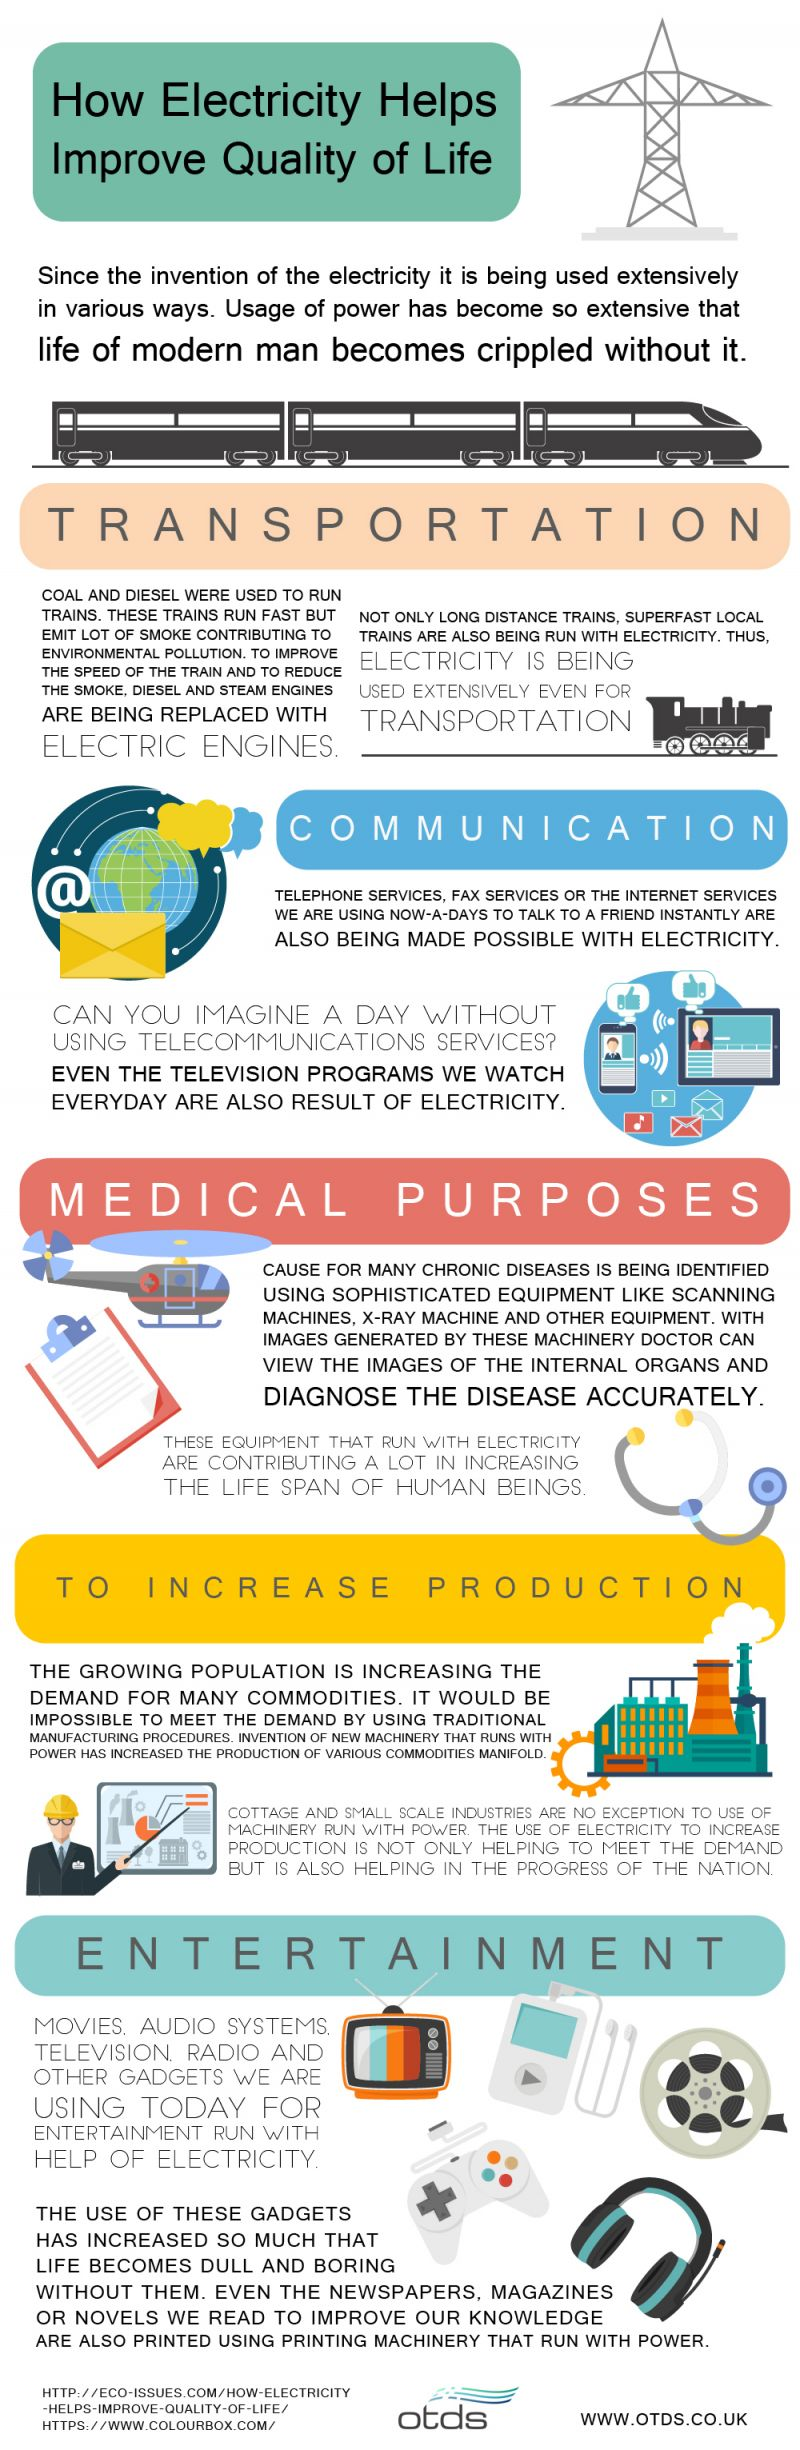 How Electricity Helps to Improve Quality of Life [Infographic]